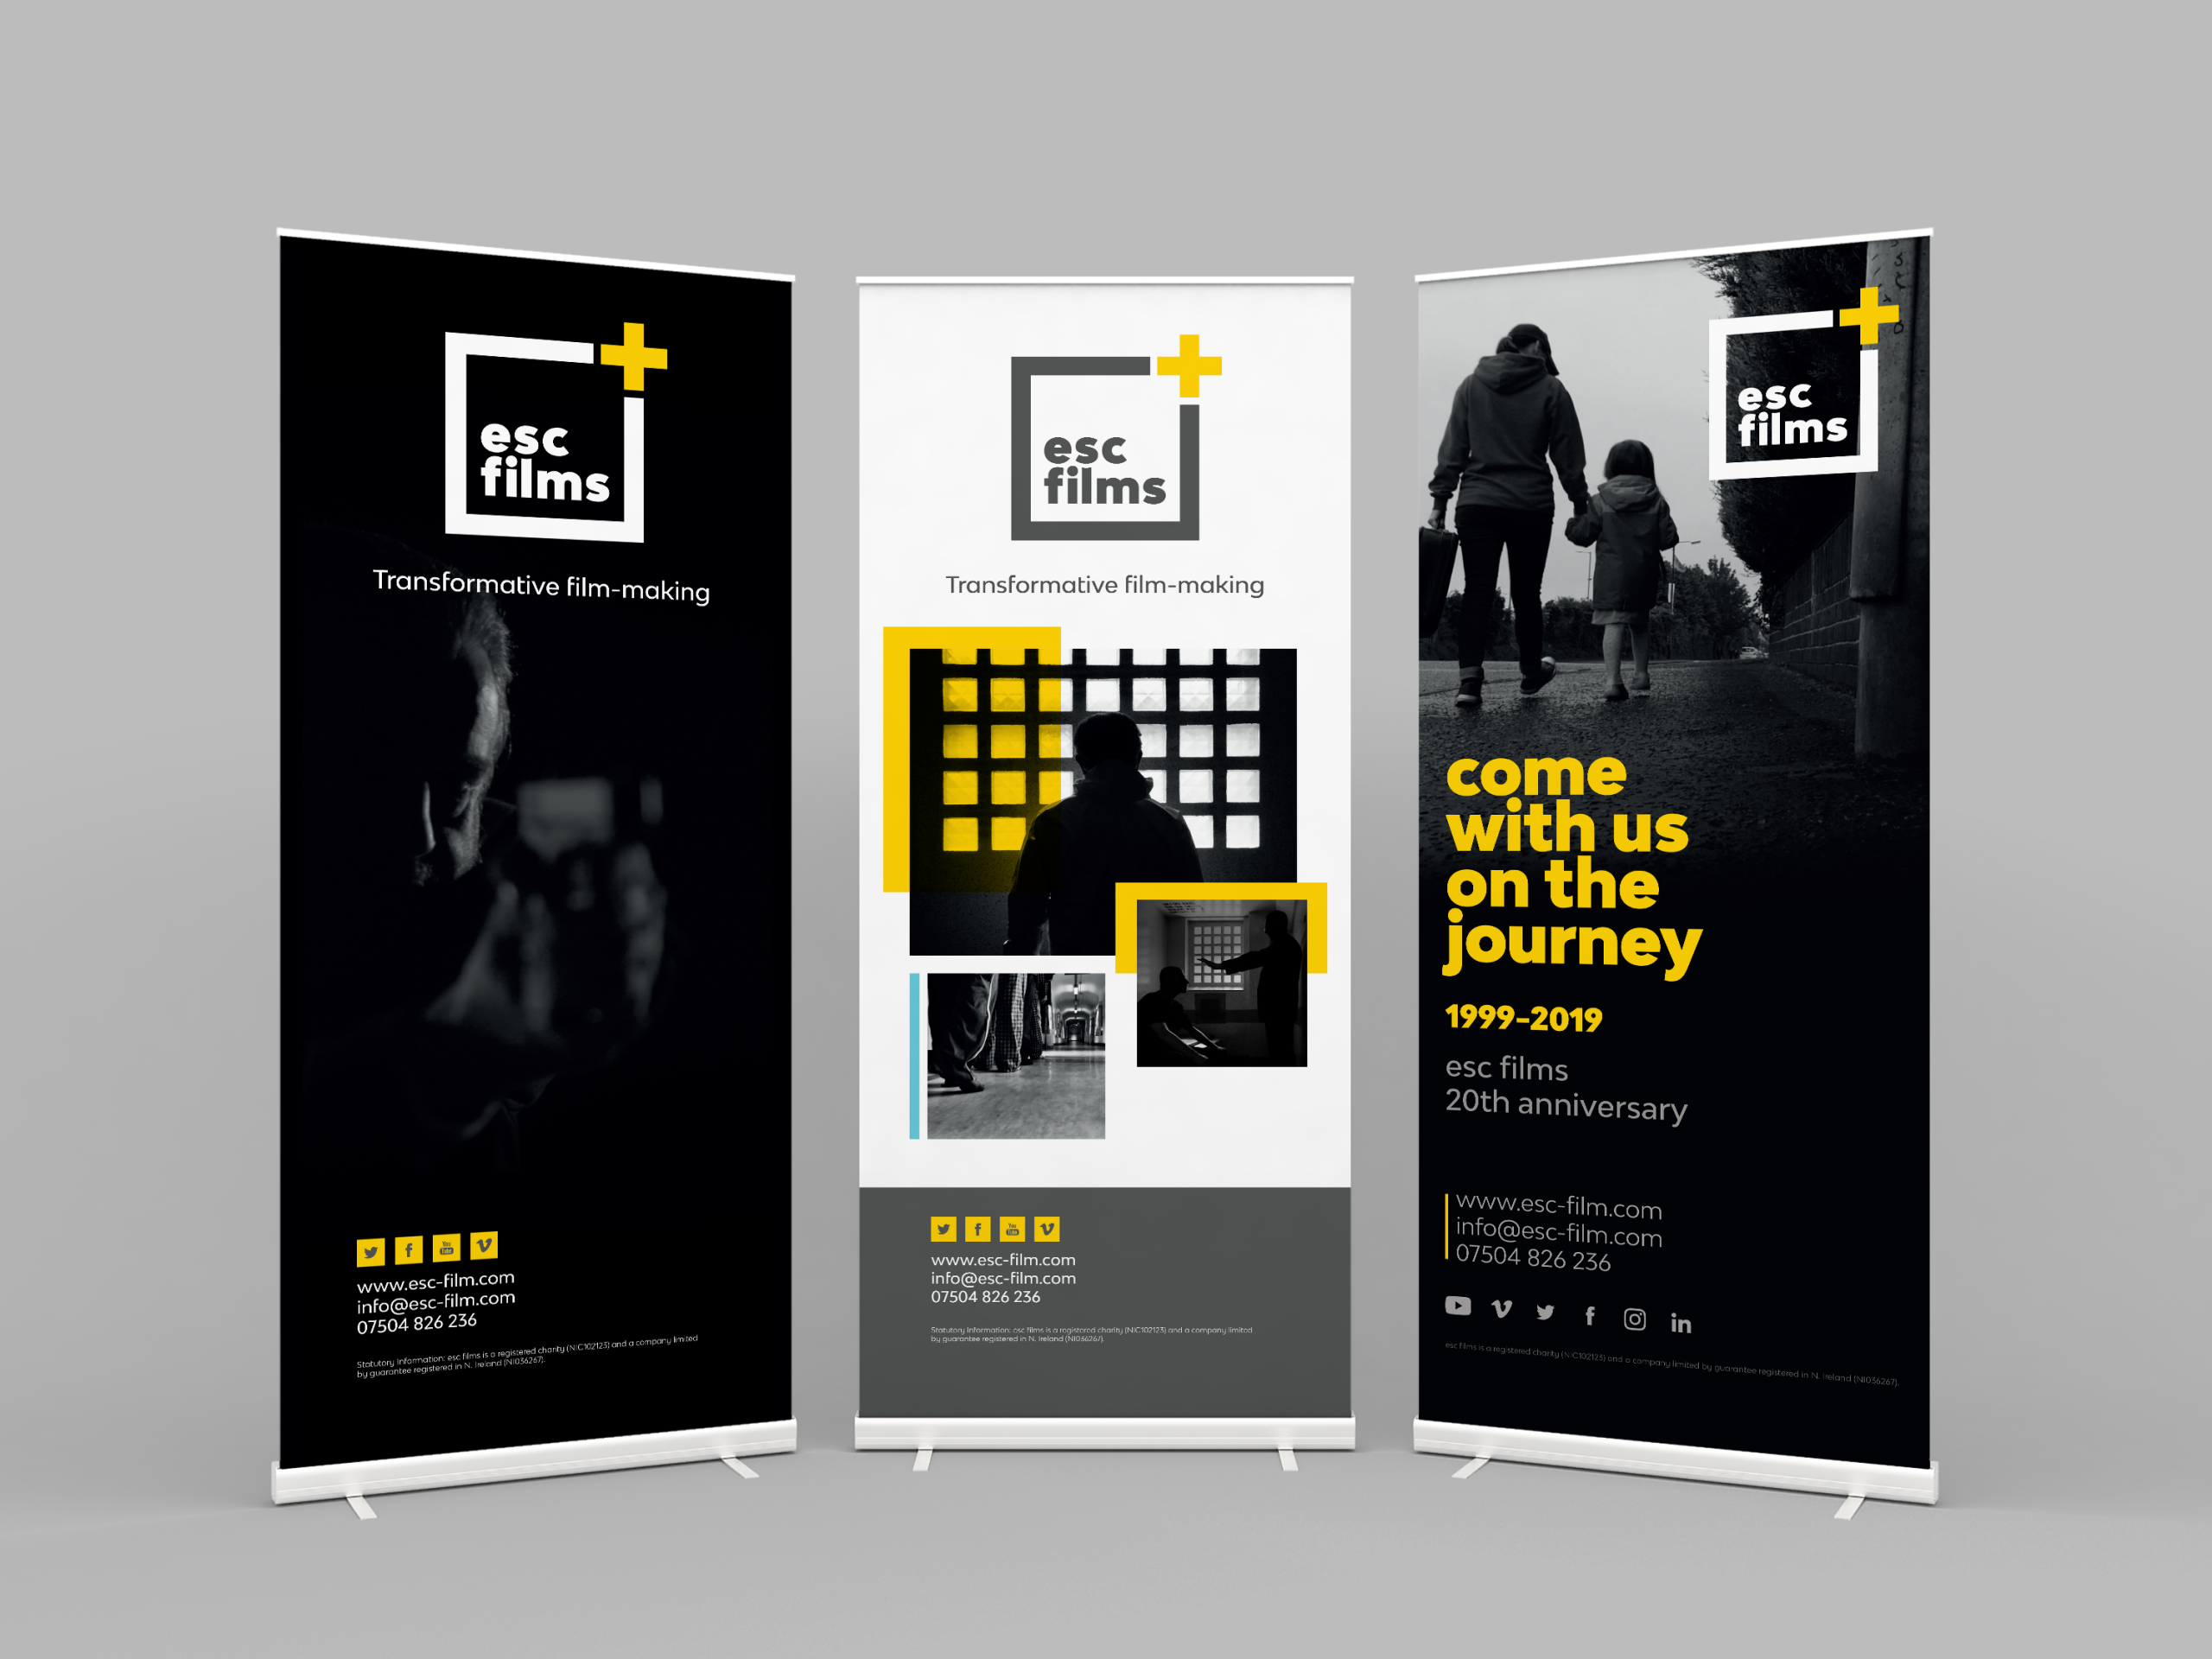 Three roll up banners, advertising events for esc films